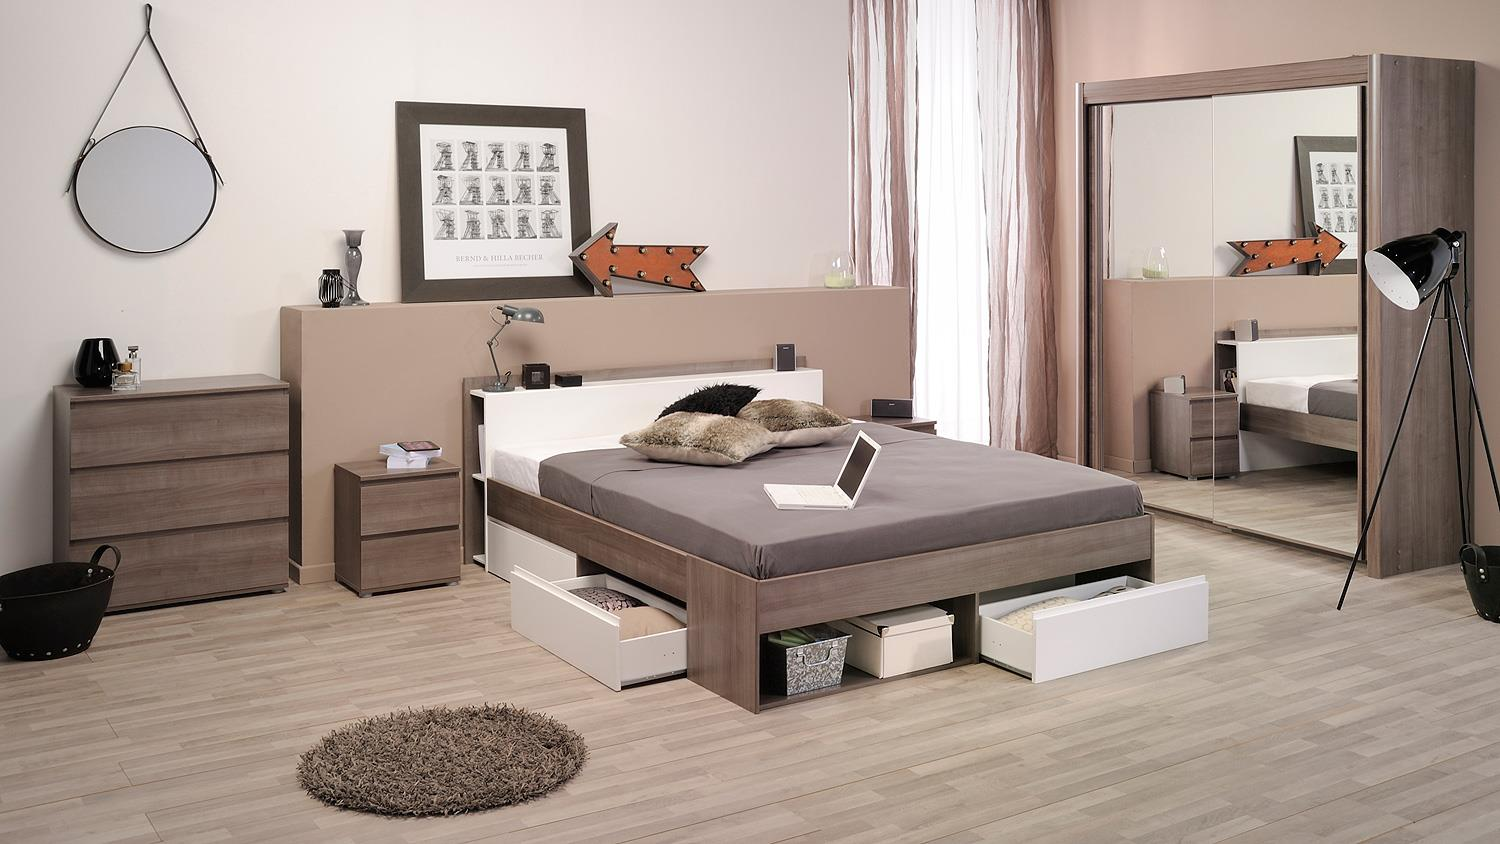 bett most jugendbett einzelliege schubk sten eiche silber wei 160. Black Bedroom Furniture Sets. Home Design Ideas